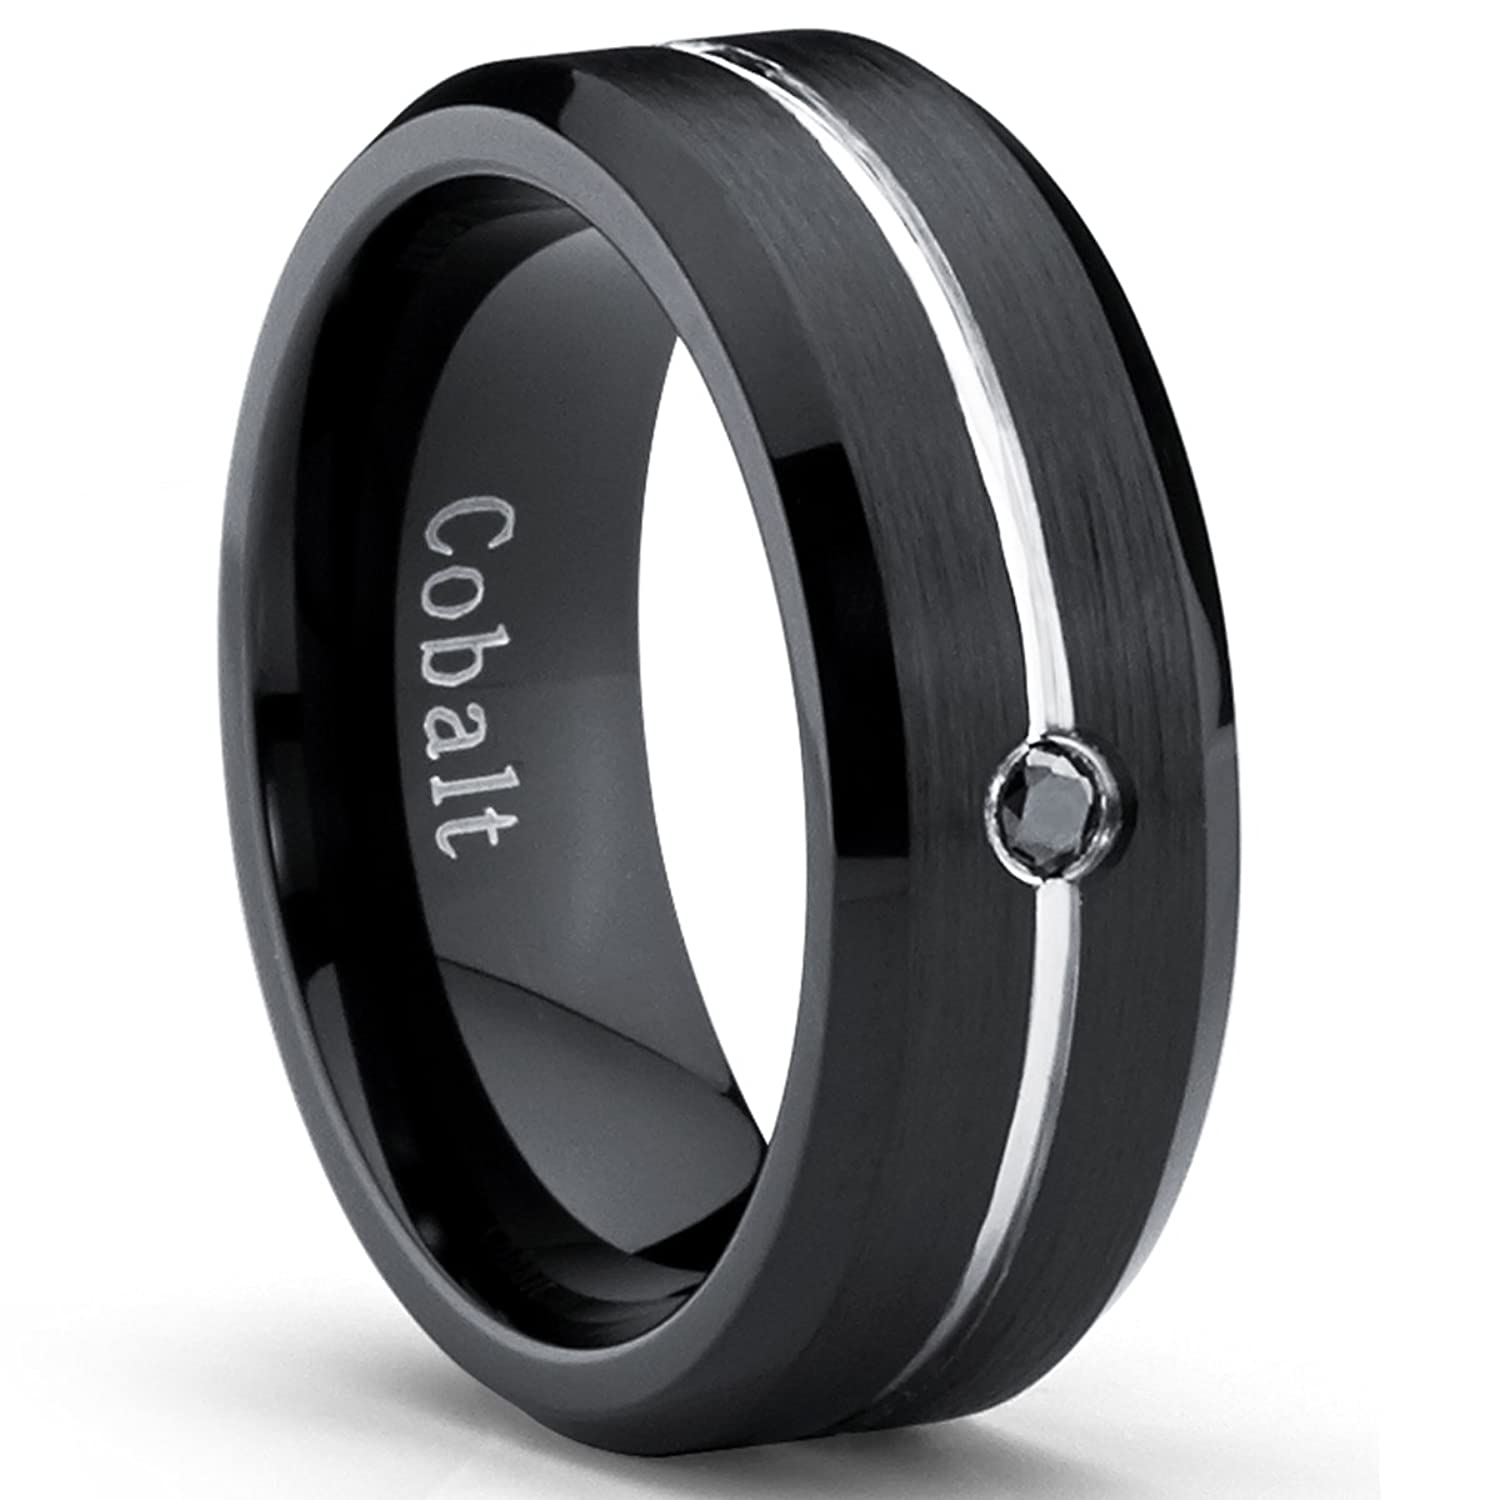 ring mens free titanium cubic carbon fiber on and men orders wedding black fit over bands shipping overstock jewelry zirconia watches dragon with design s oliveti band product comfort